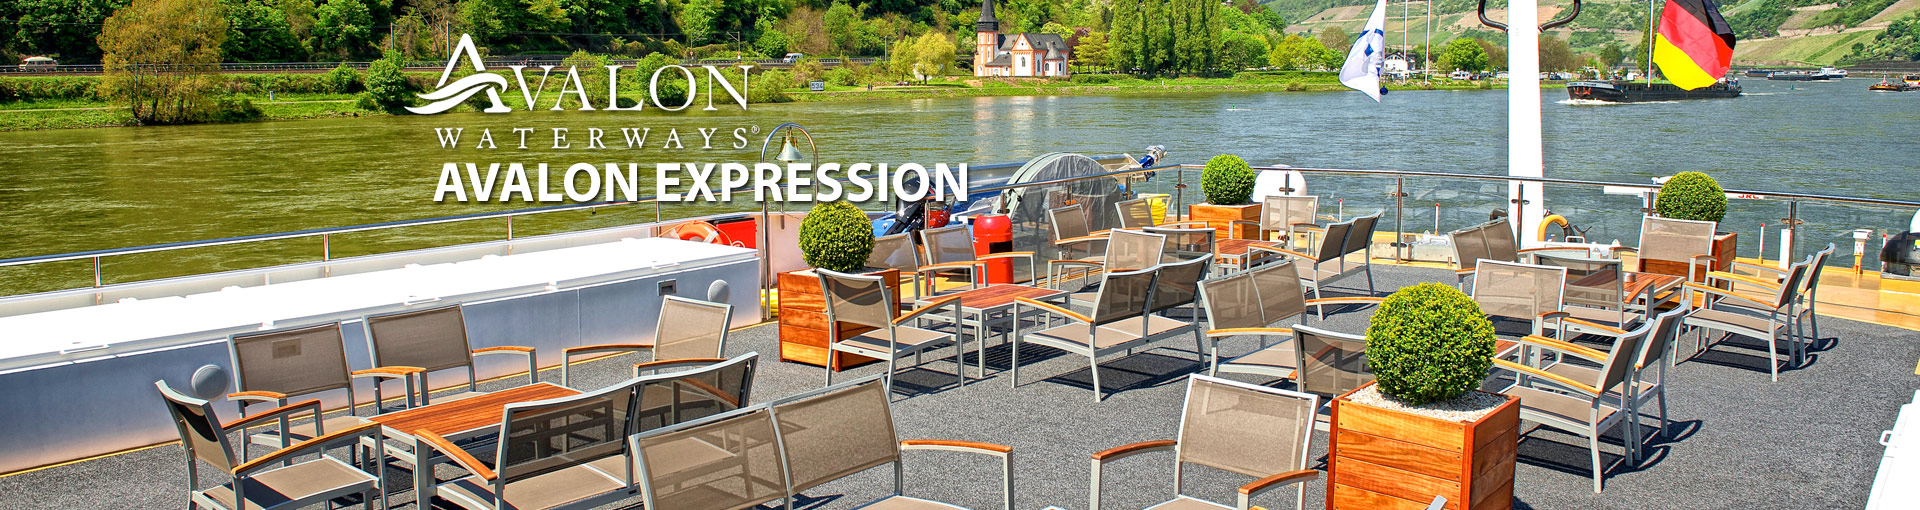 Avalon Waterways Expression river cruise ship